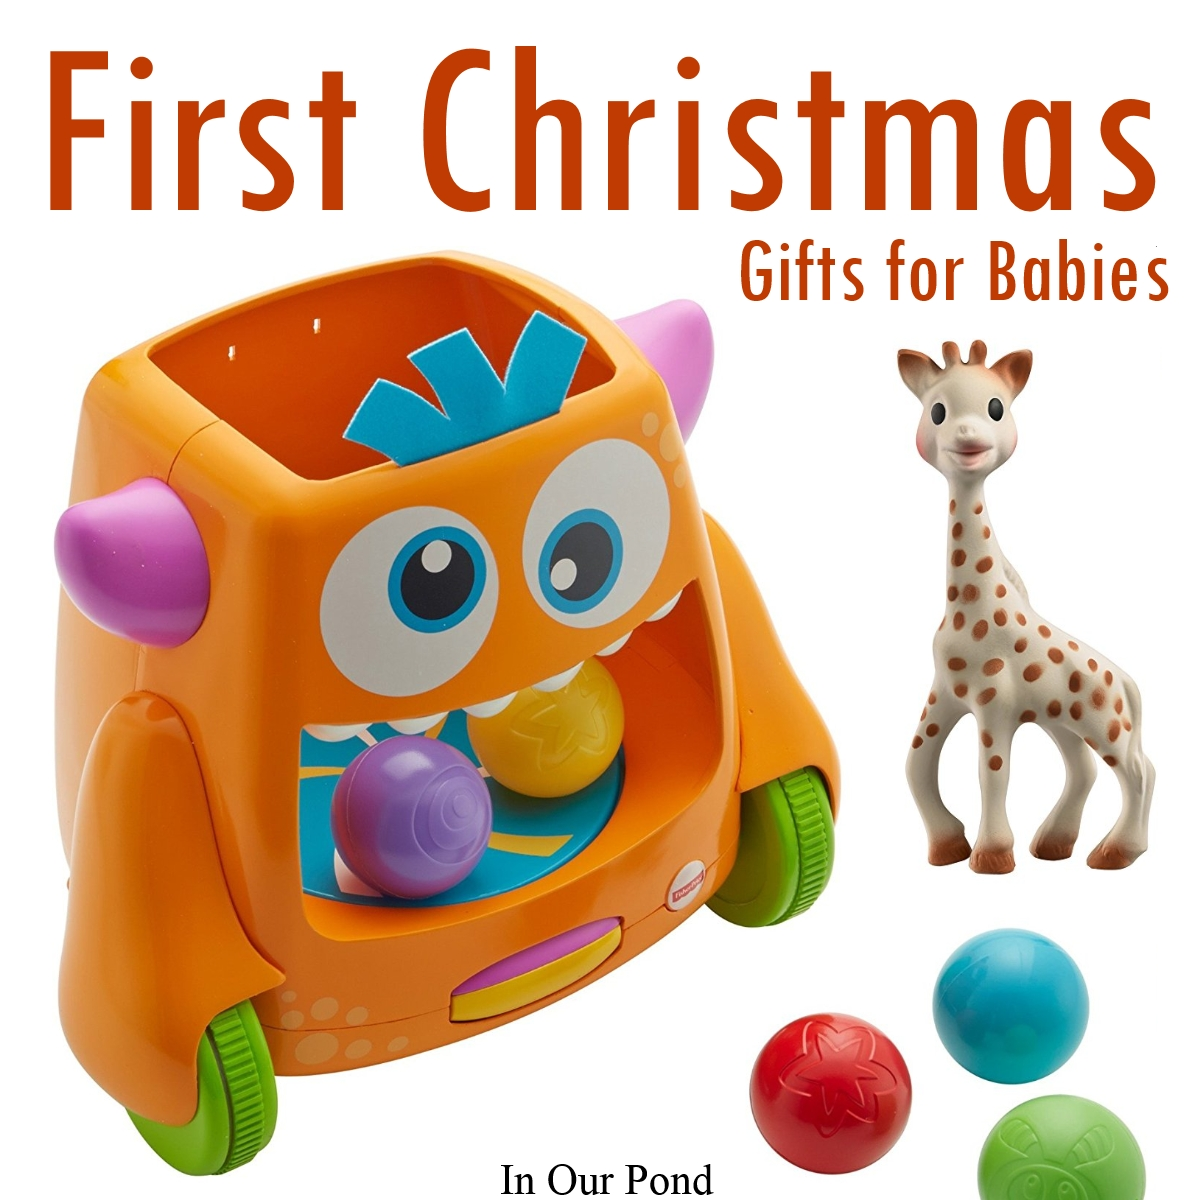 First Christmas Gifts for Babies - In Our Pond